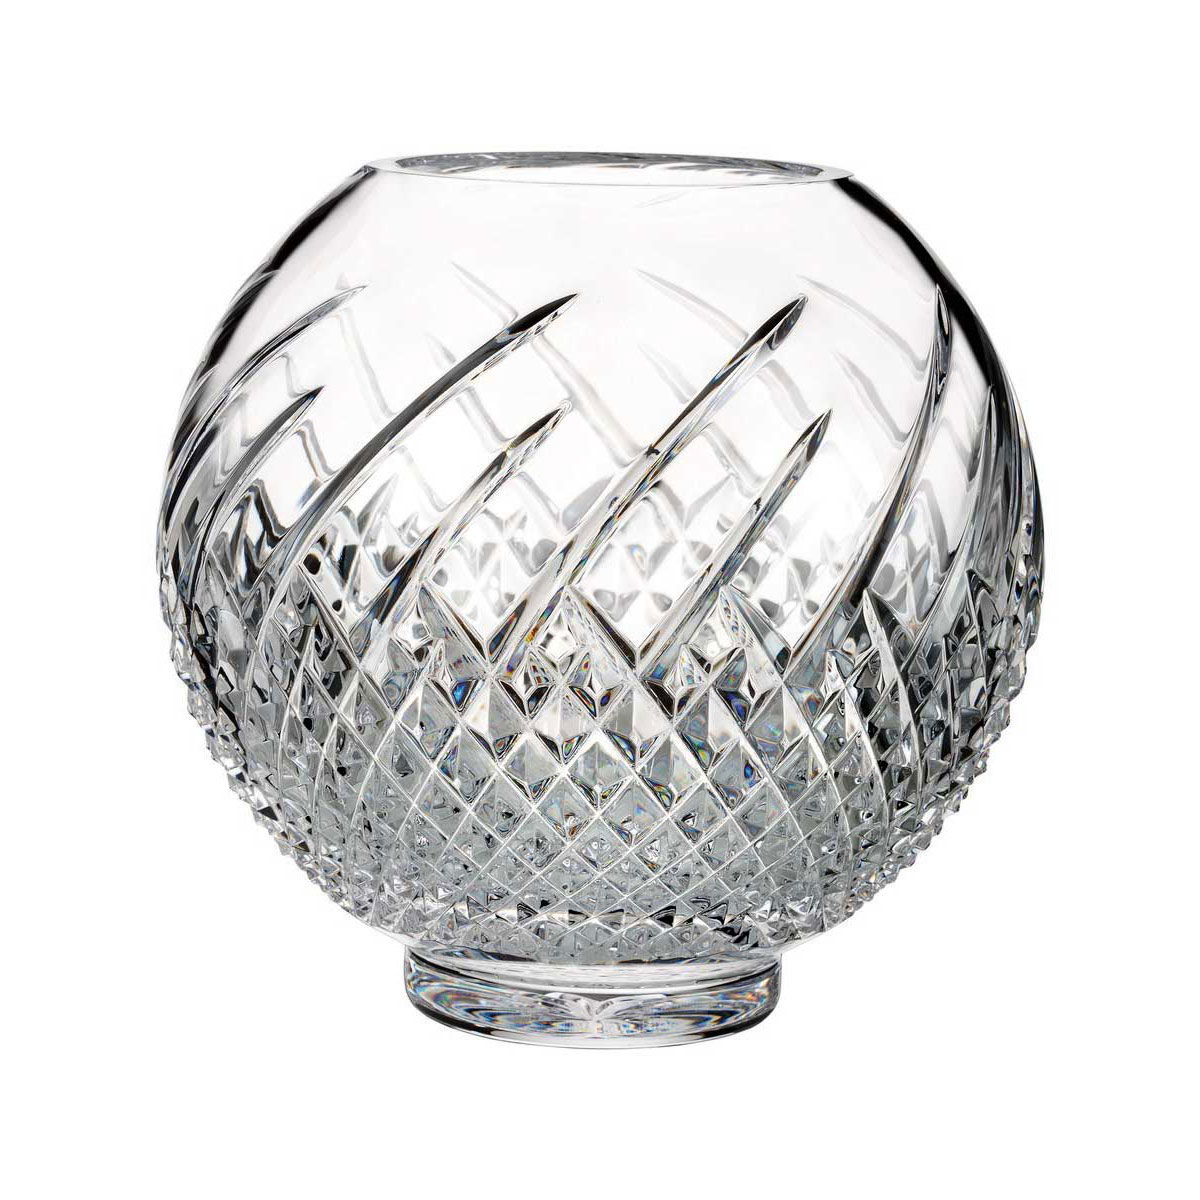 Waterford Crystal, House of Waterford Wild Atlantic Way Crystal Rose Bowl